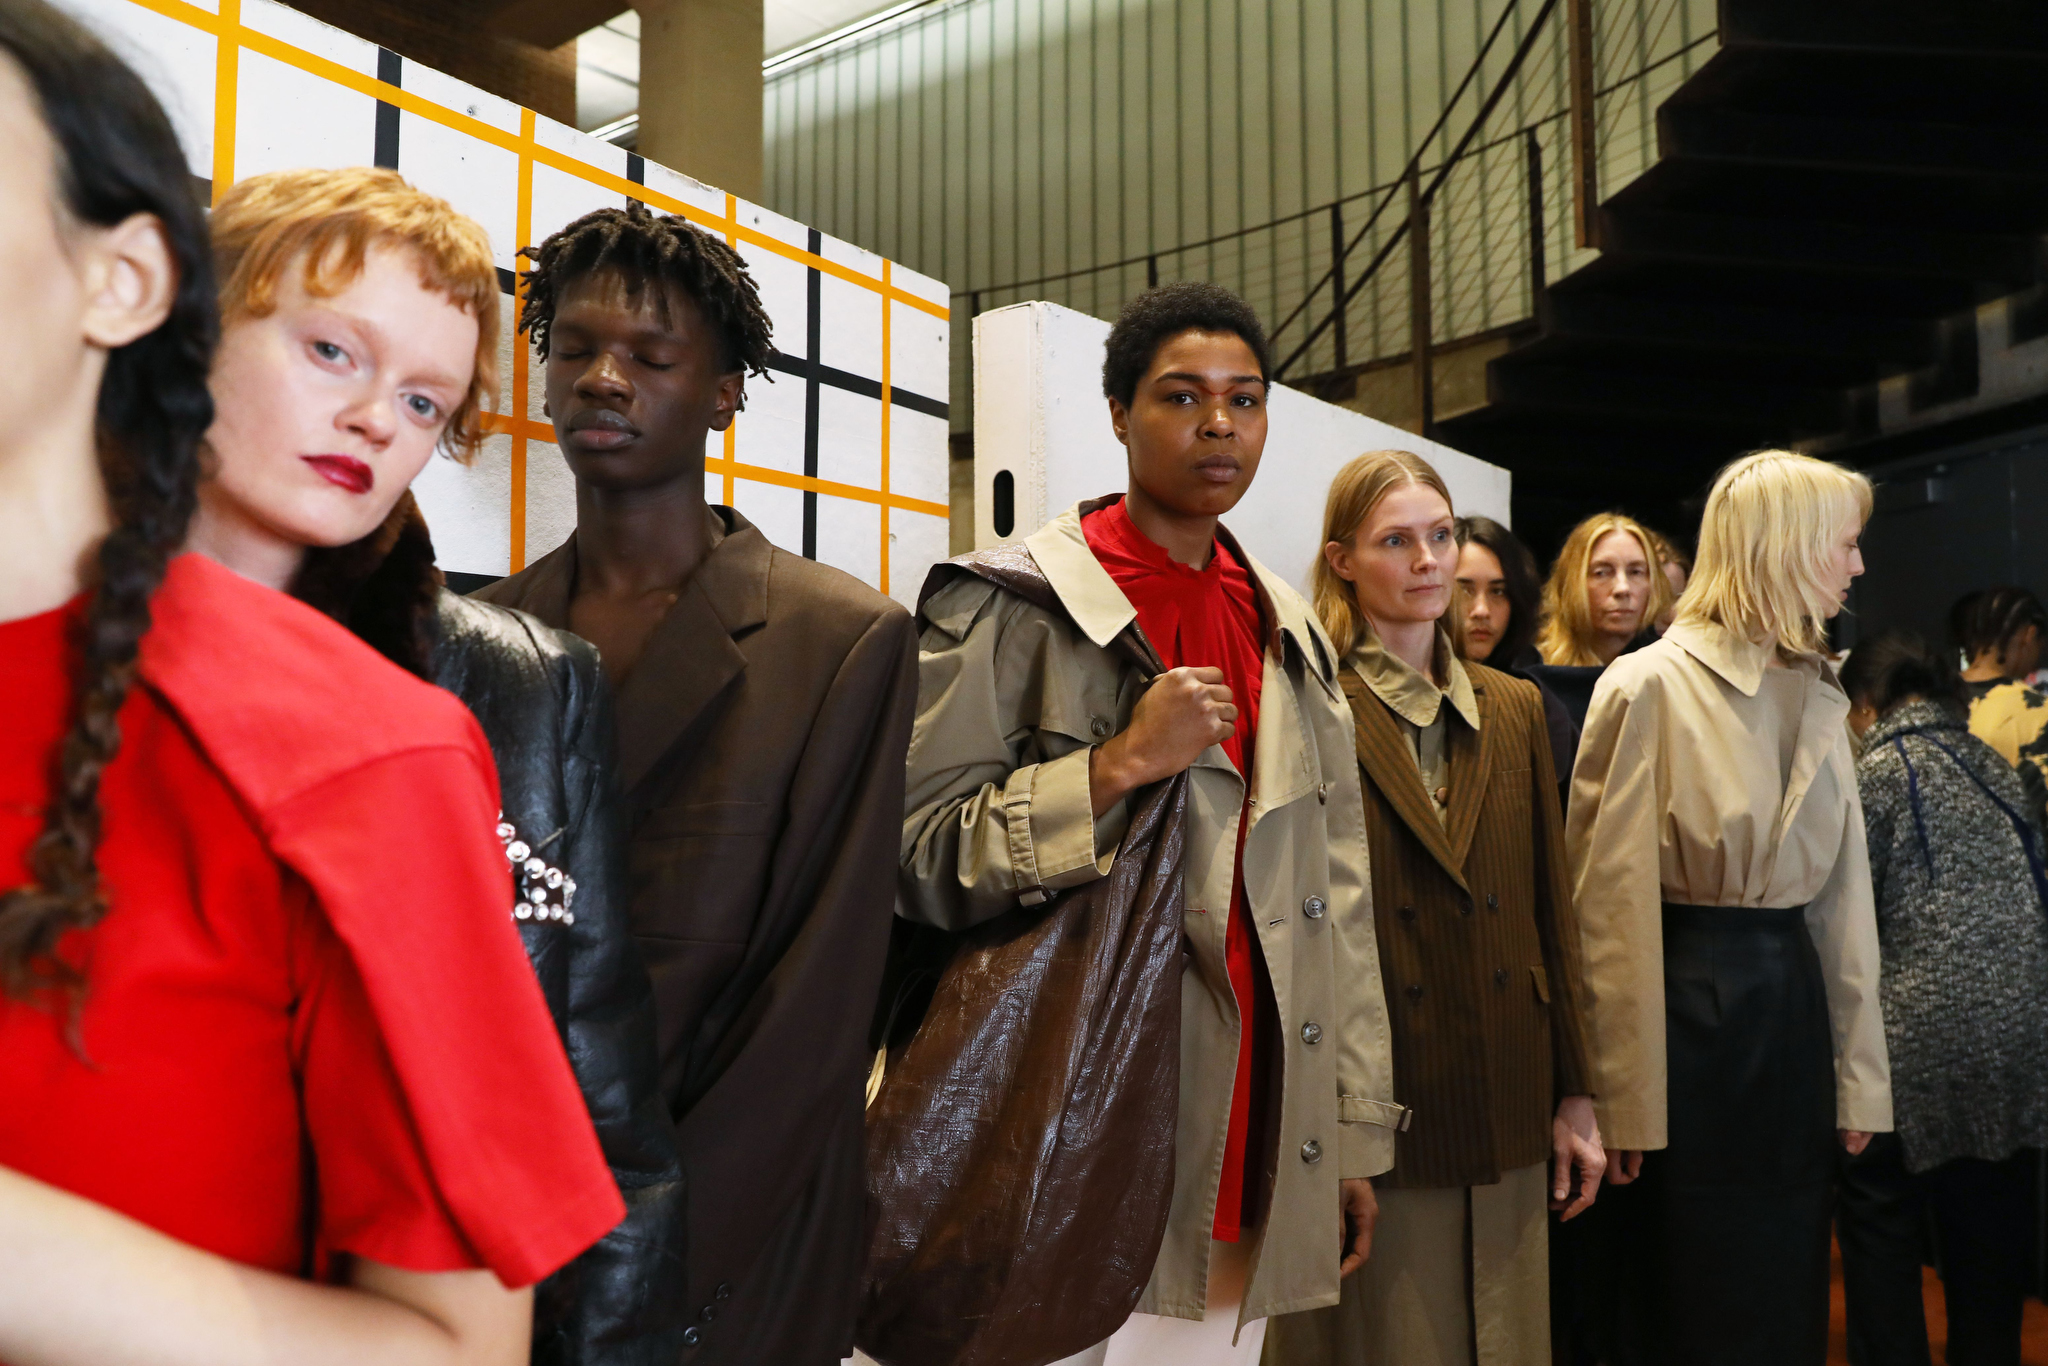 Backstage at CDLM RTW Fall 2019